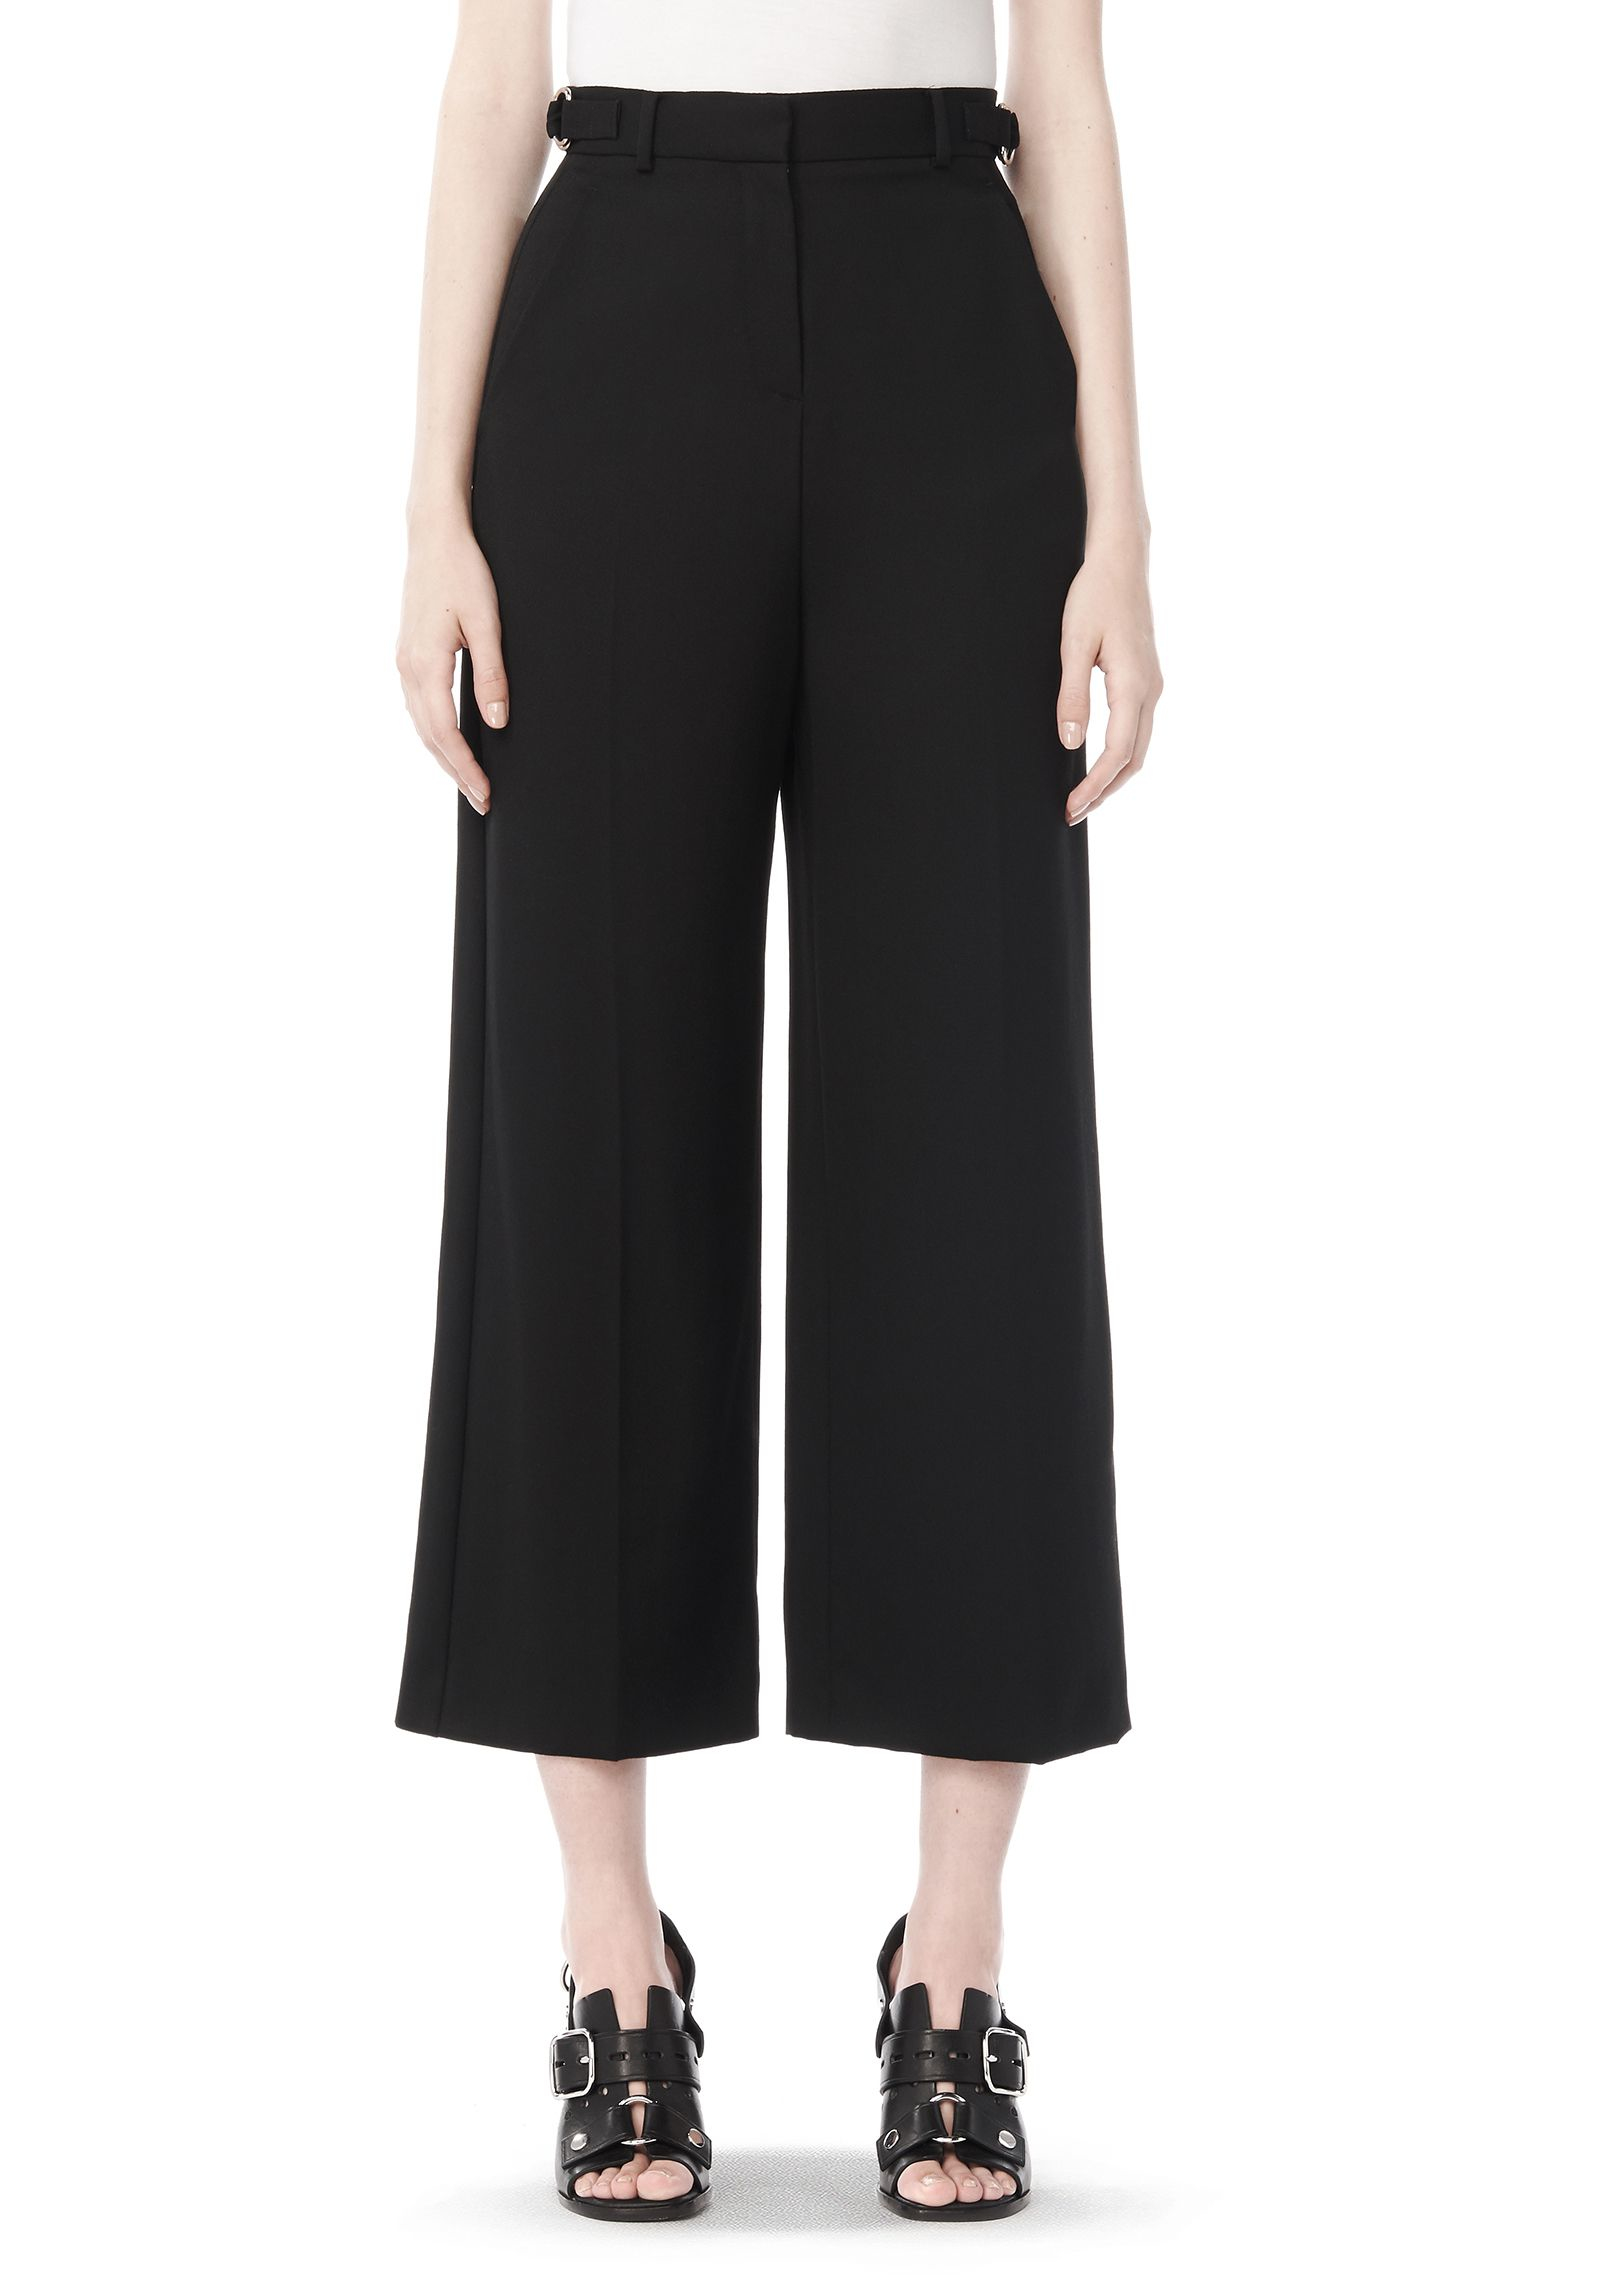 Shop for wide leg black polyester pants and other bottoms products at ShapeShop. Browse our bottoms selections and save today.